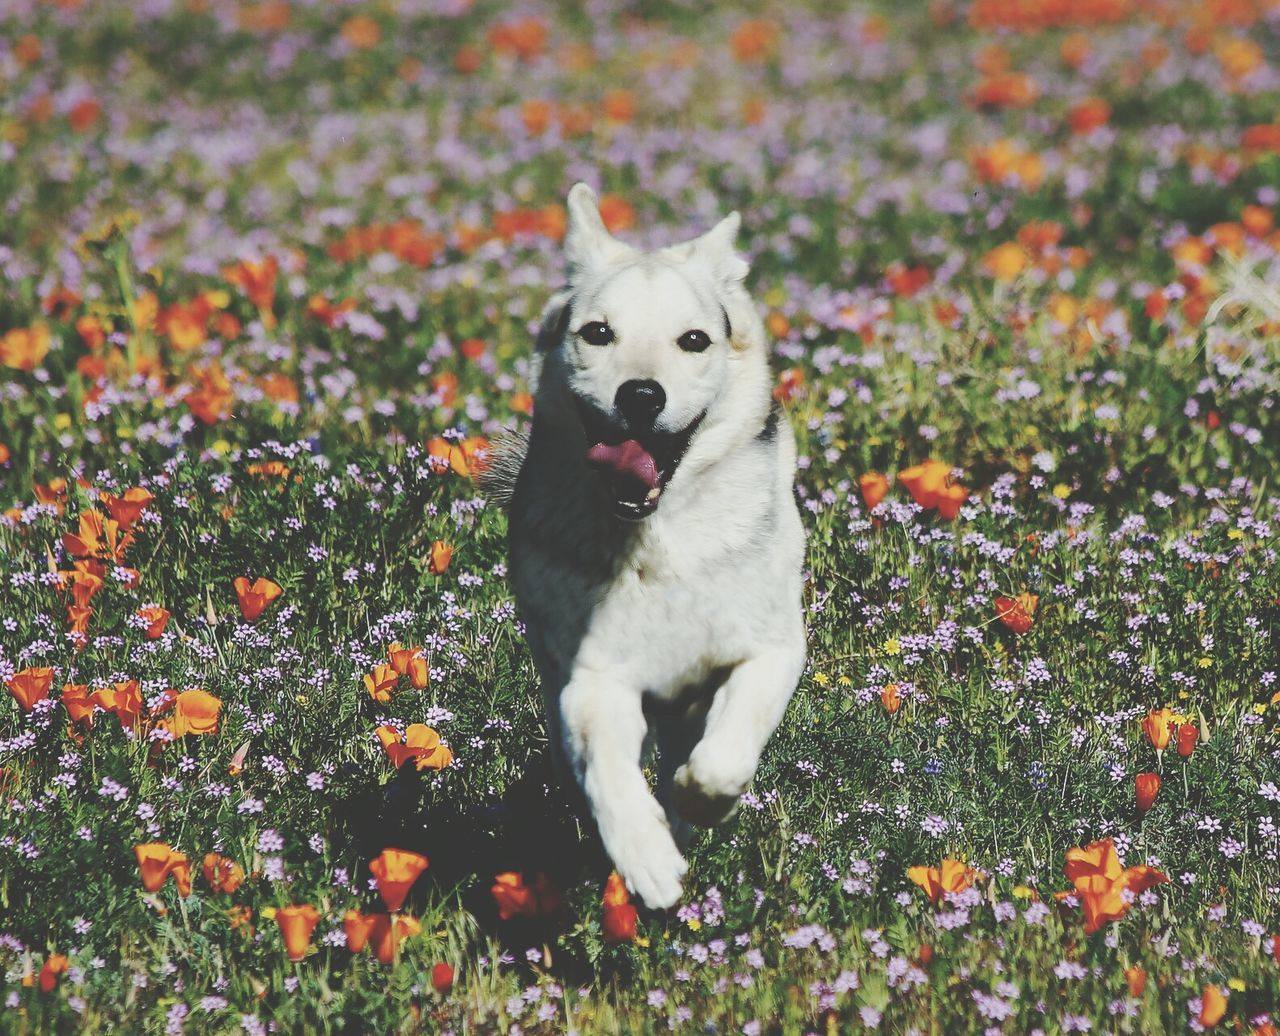 Pets Dog One Animal Domestic Animals Animal Themes Mammal Autumn Outdoors No People Grass Looking At Camera Day Protruding Puppy Flower Nature Portrait Sitting Retriever First Eyeem Photo